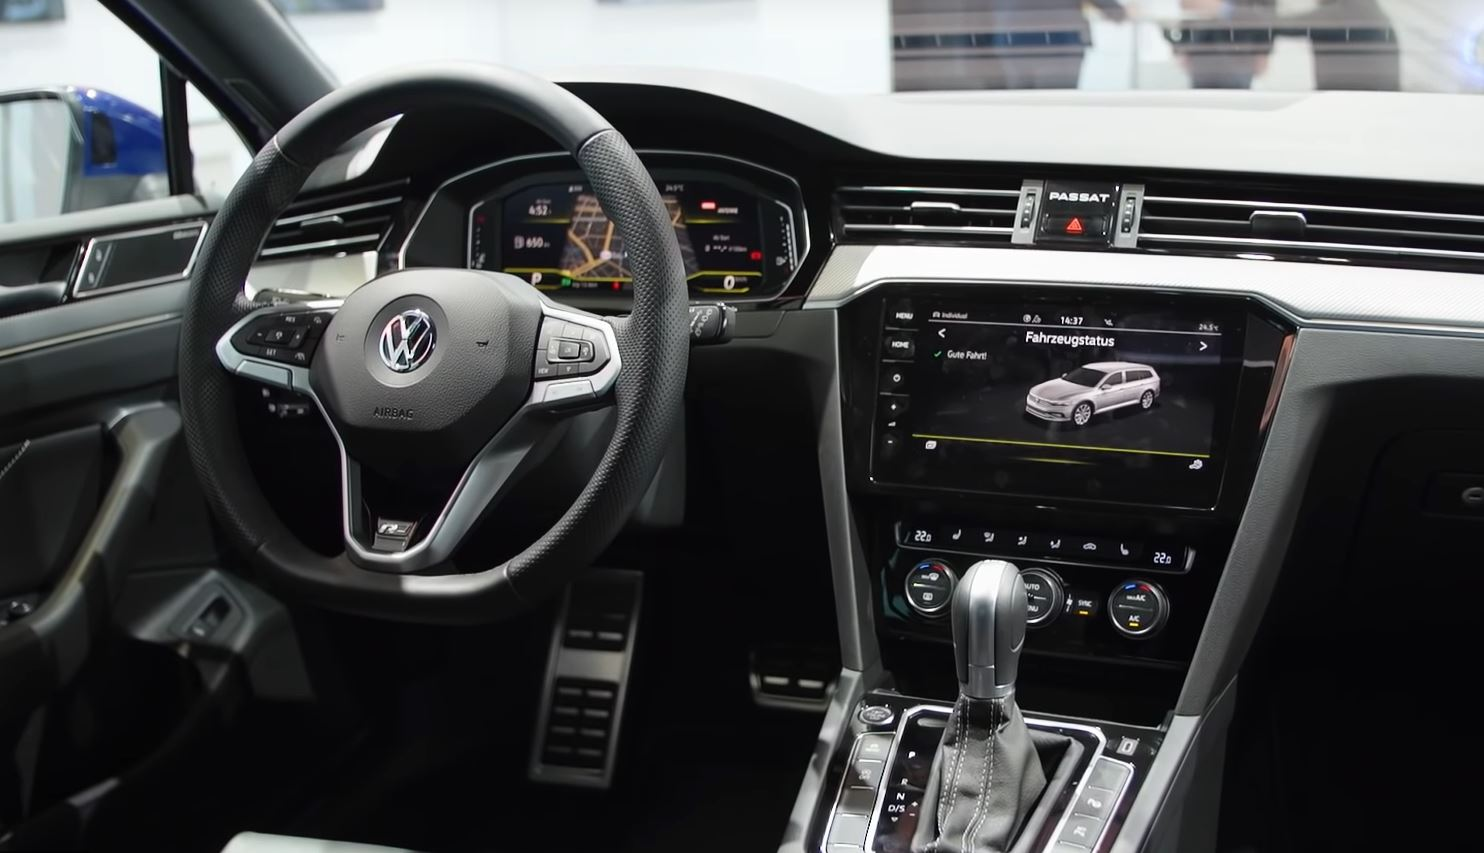 2019 VW Passat B8 Facelift Gets Detailed Walkaround Video: Inside and Out - autoevolution